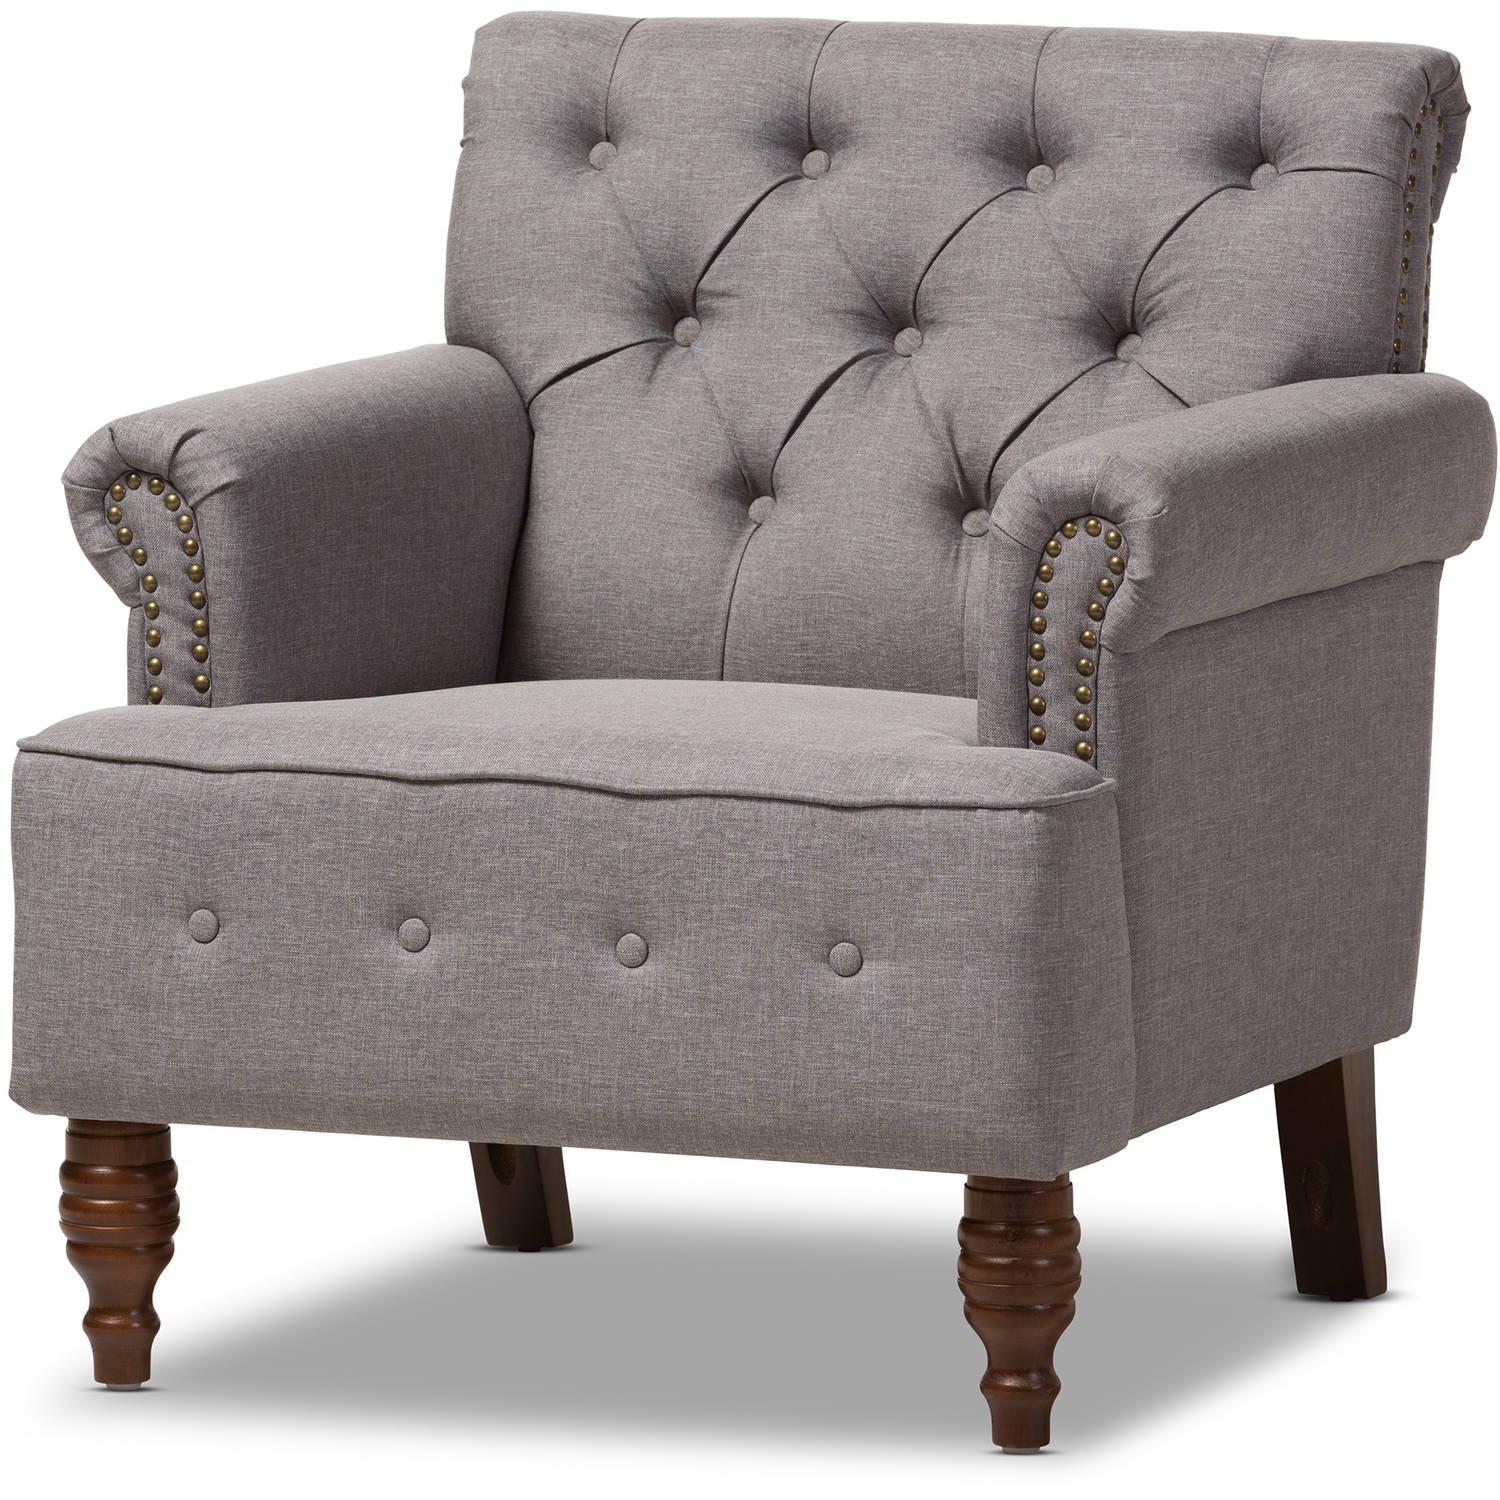 Baxton Studio Christa Modern and Contemporary Light Gray Fabric Upholstered Walnut Wood Button-Tufted Armchair by Baxton Studio